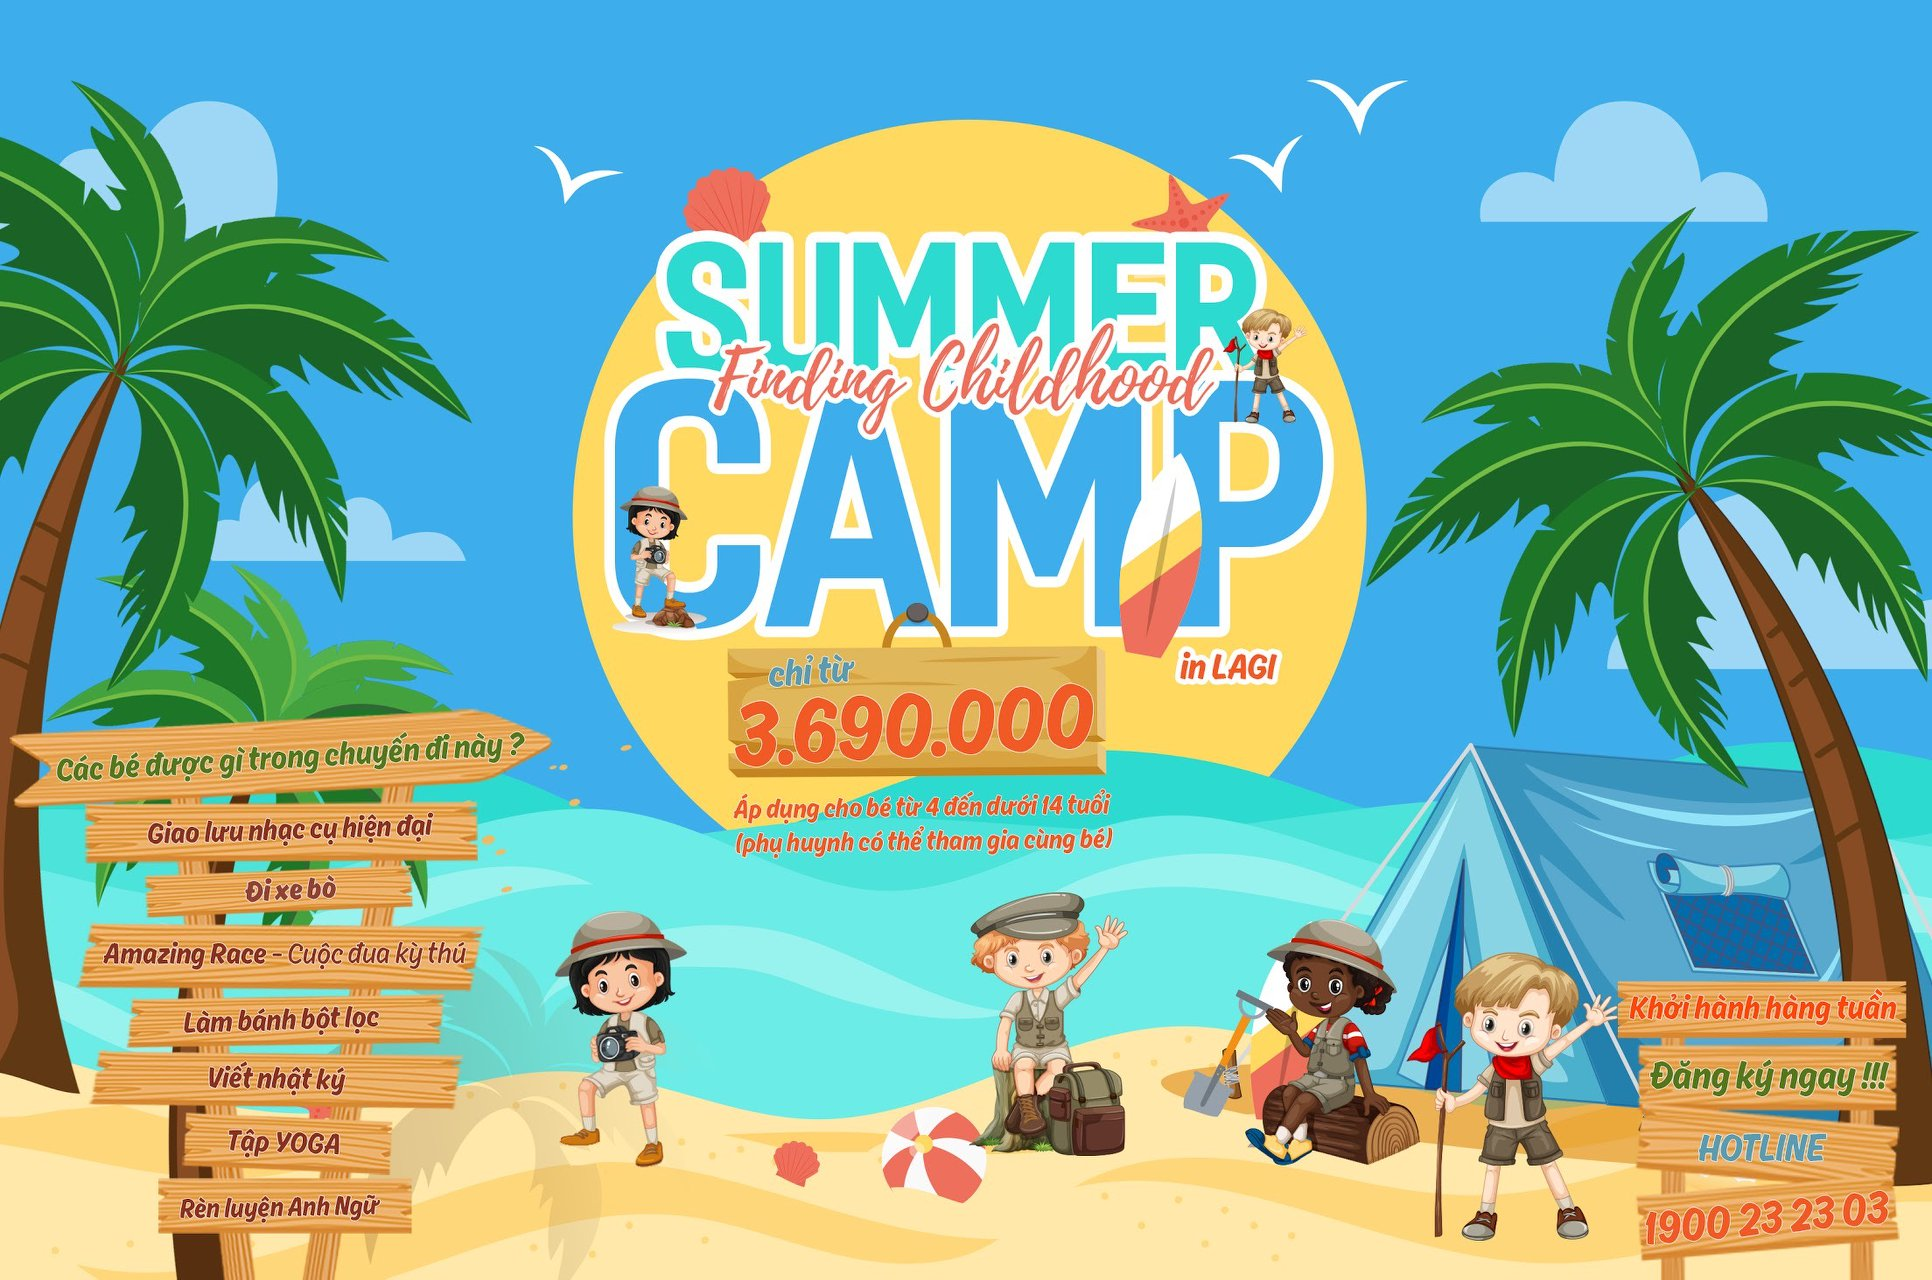 FINDING CHILDHOOD SUMMER CAMP 2020 - LAGI FARMSTAY 2020